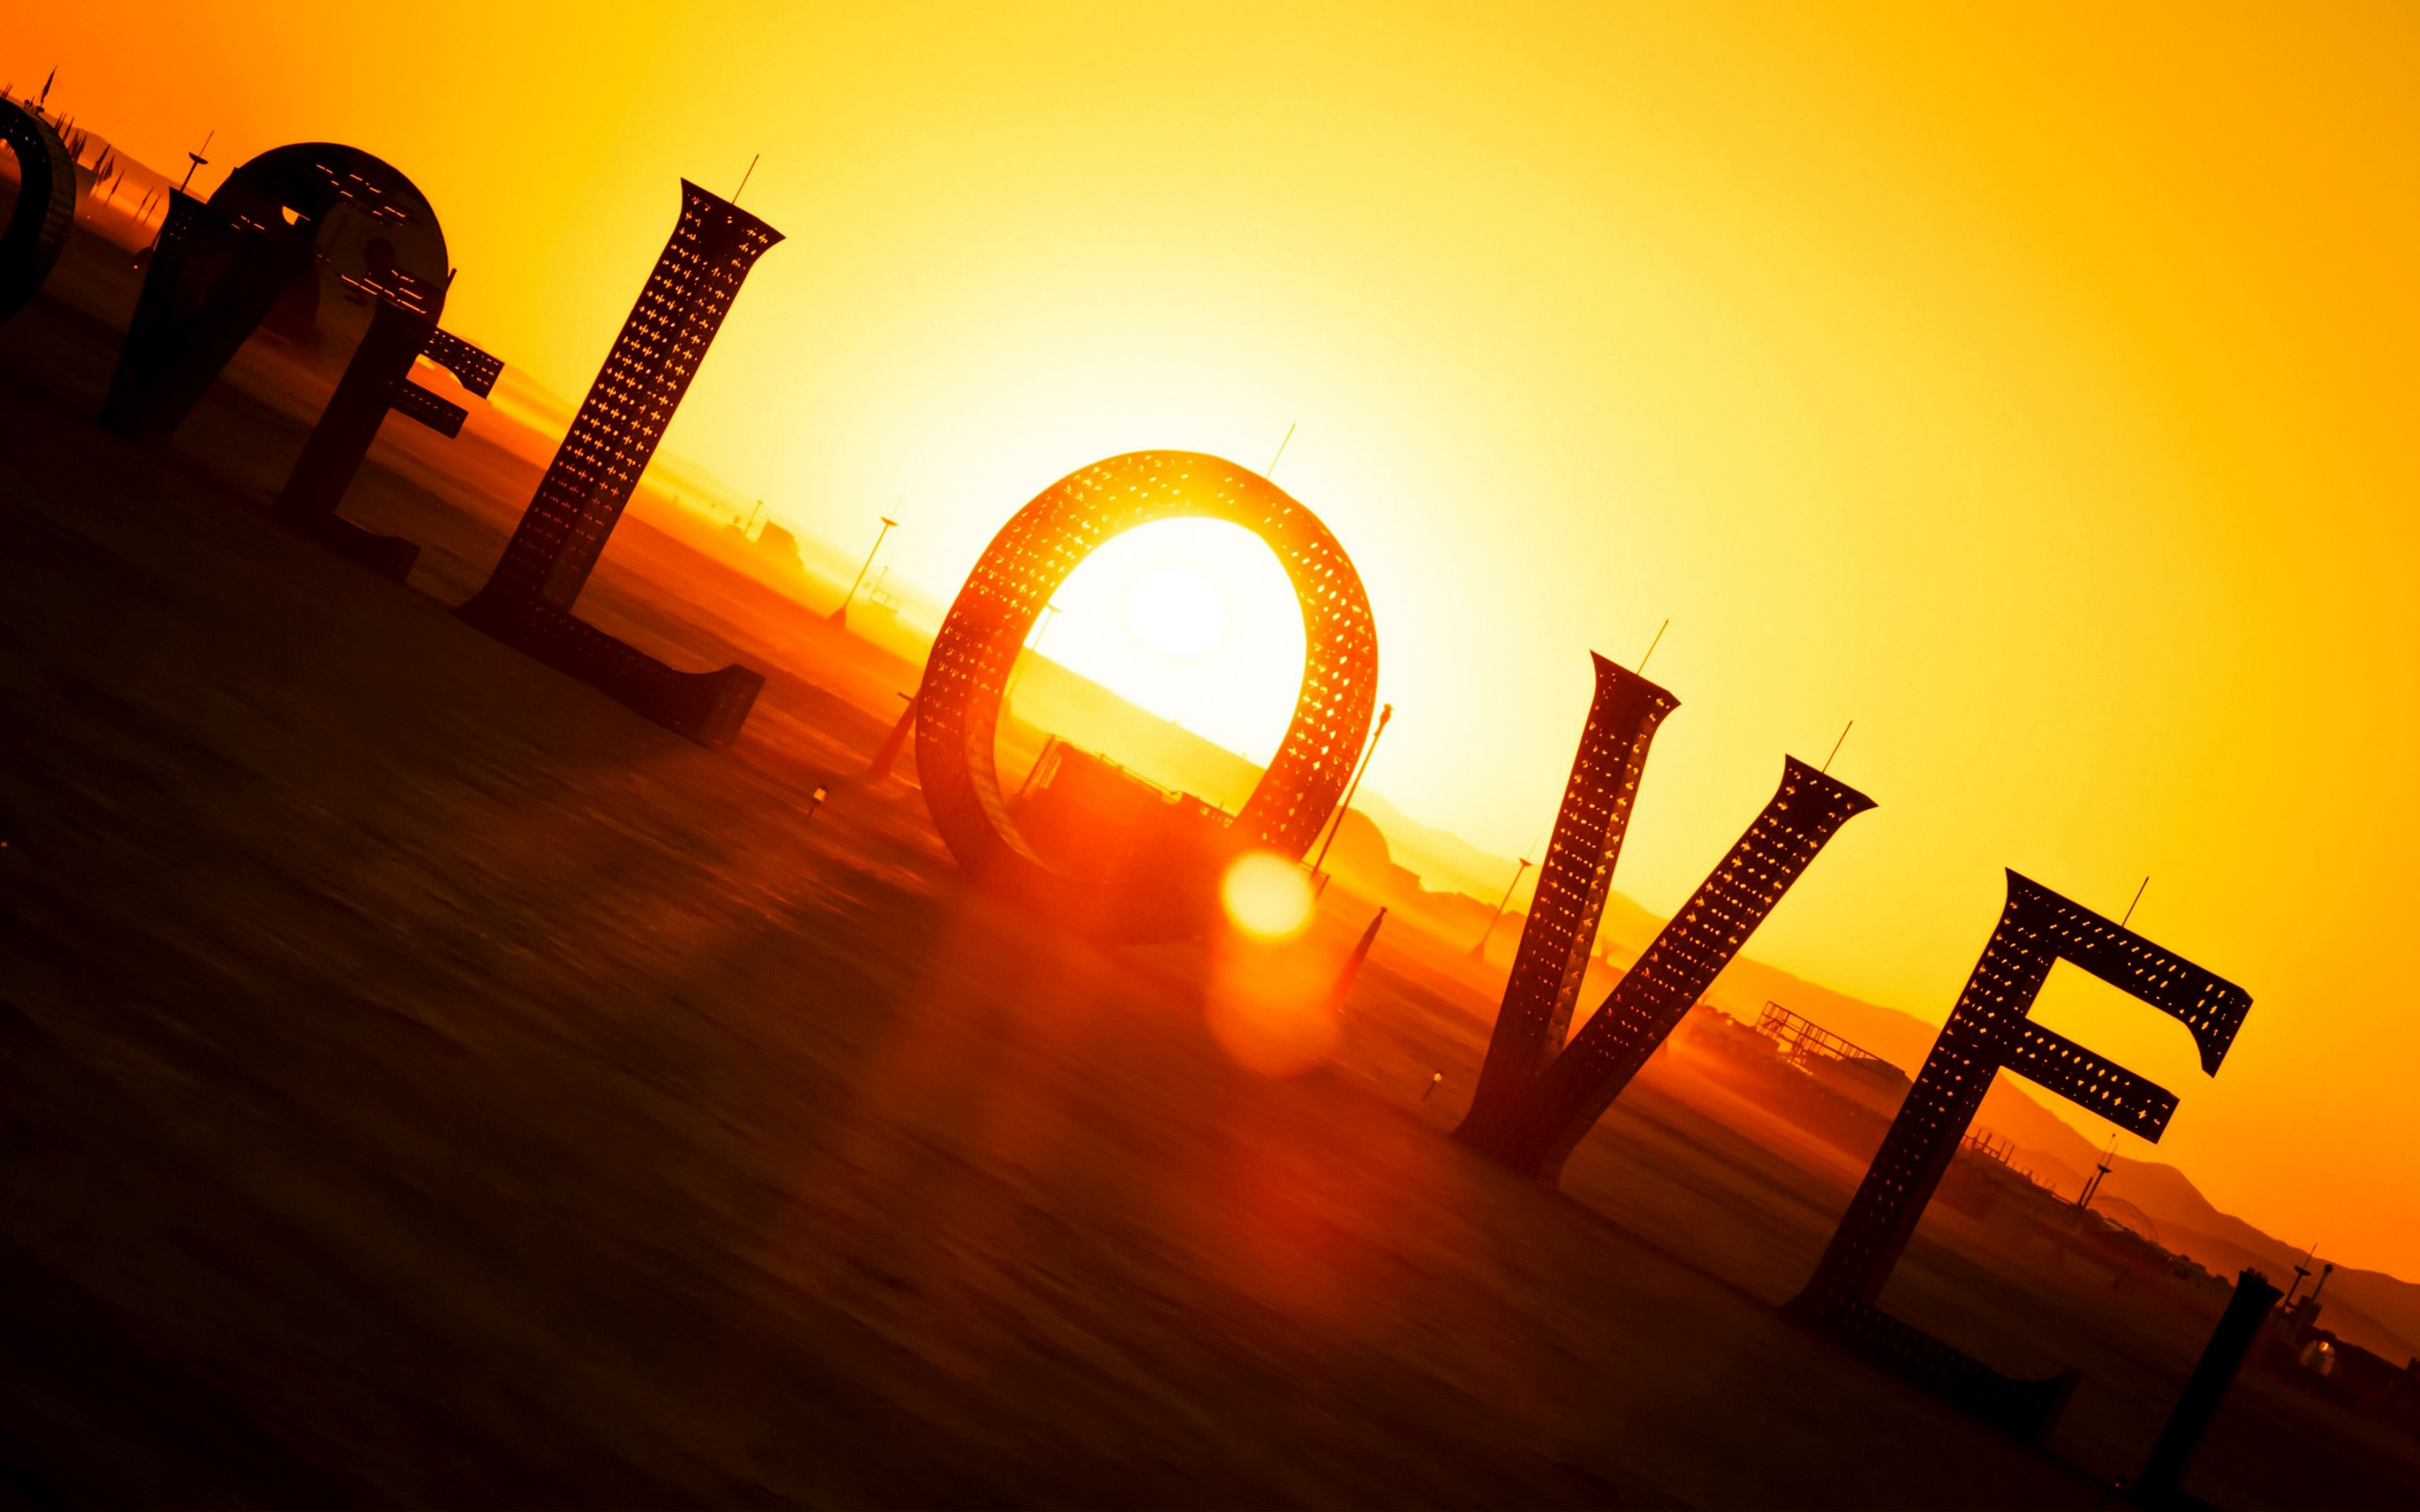 Cool love backgrounds wallpapersafari - Cool love images ...